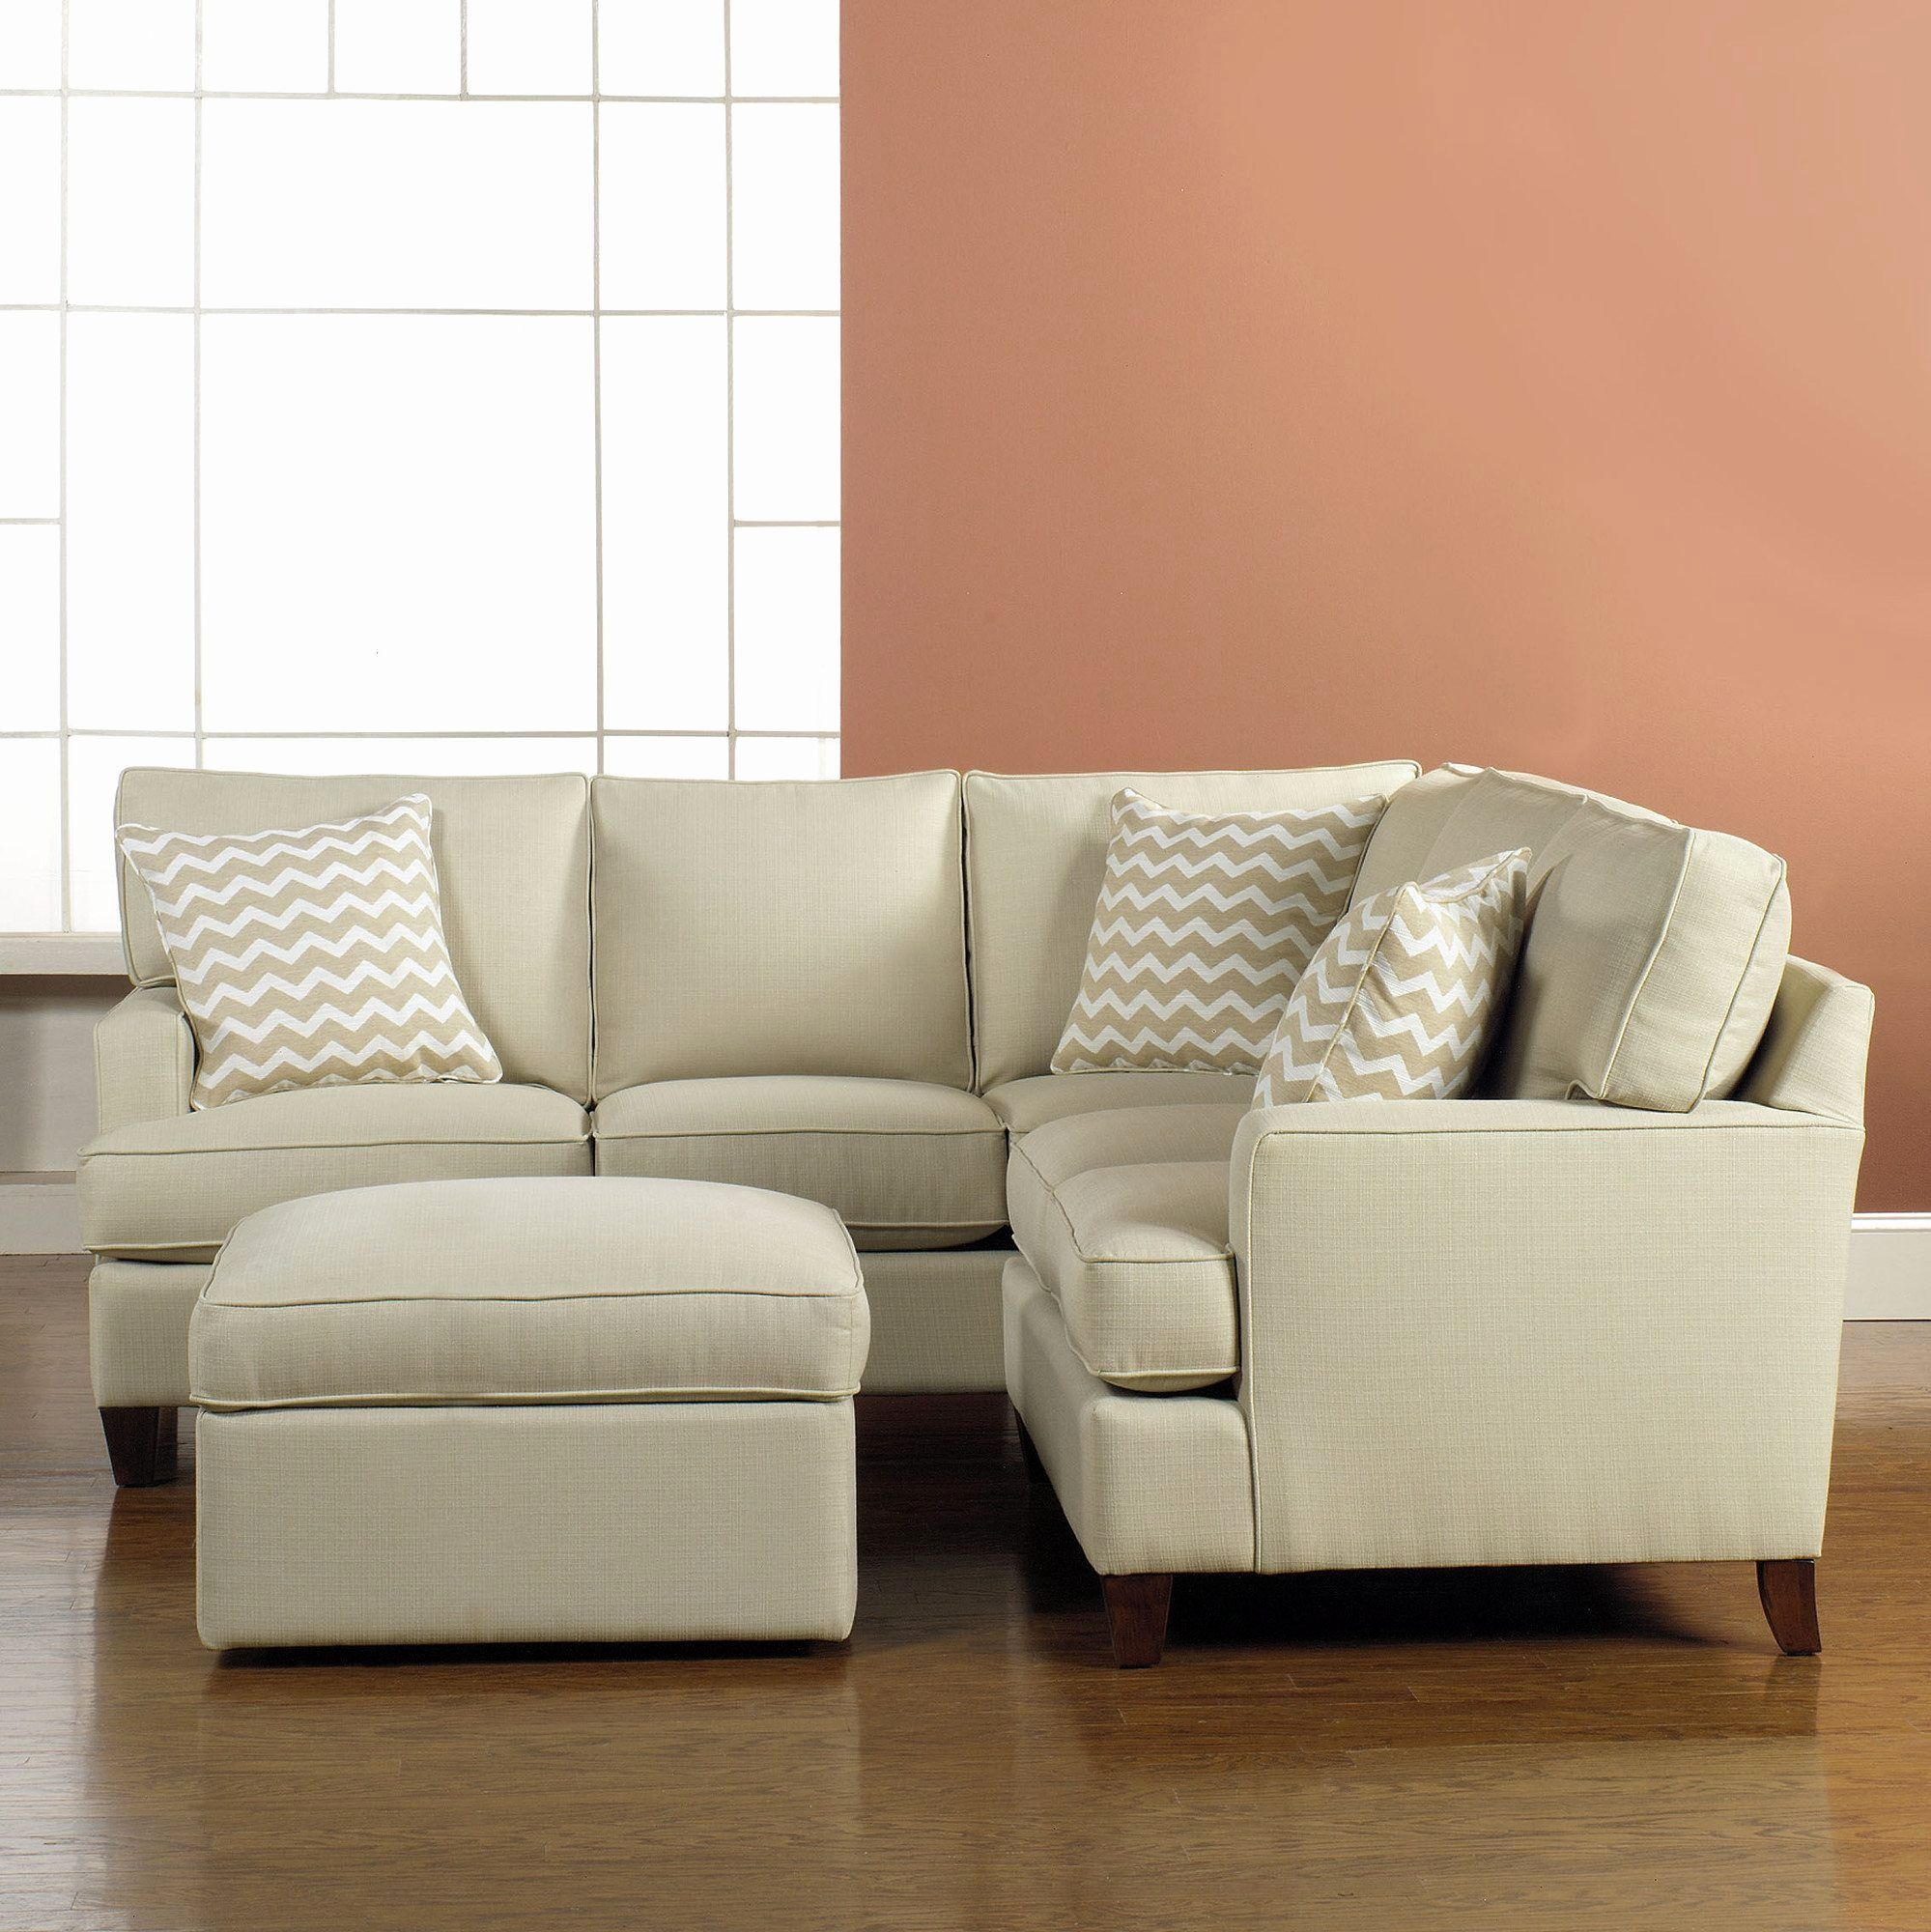 Best Of Small Apartment Sectional Sofa Image Sofas Awesome